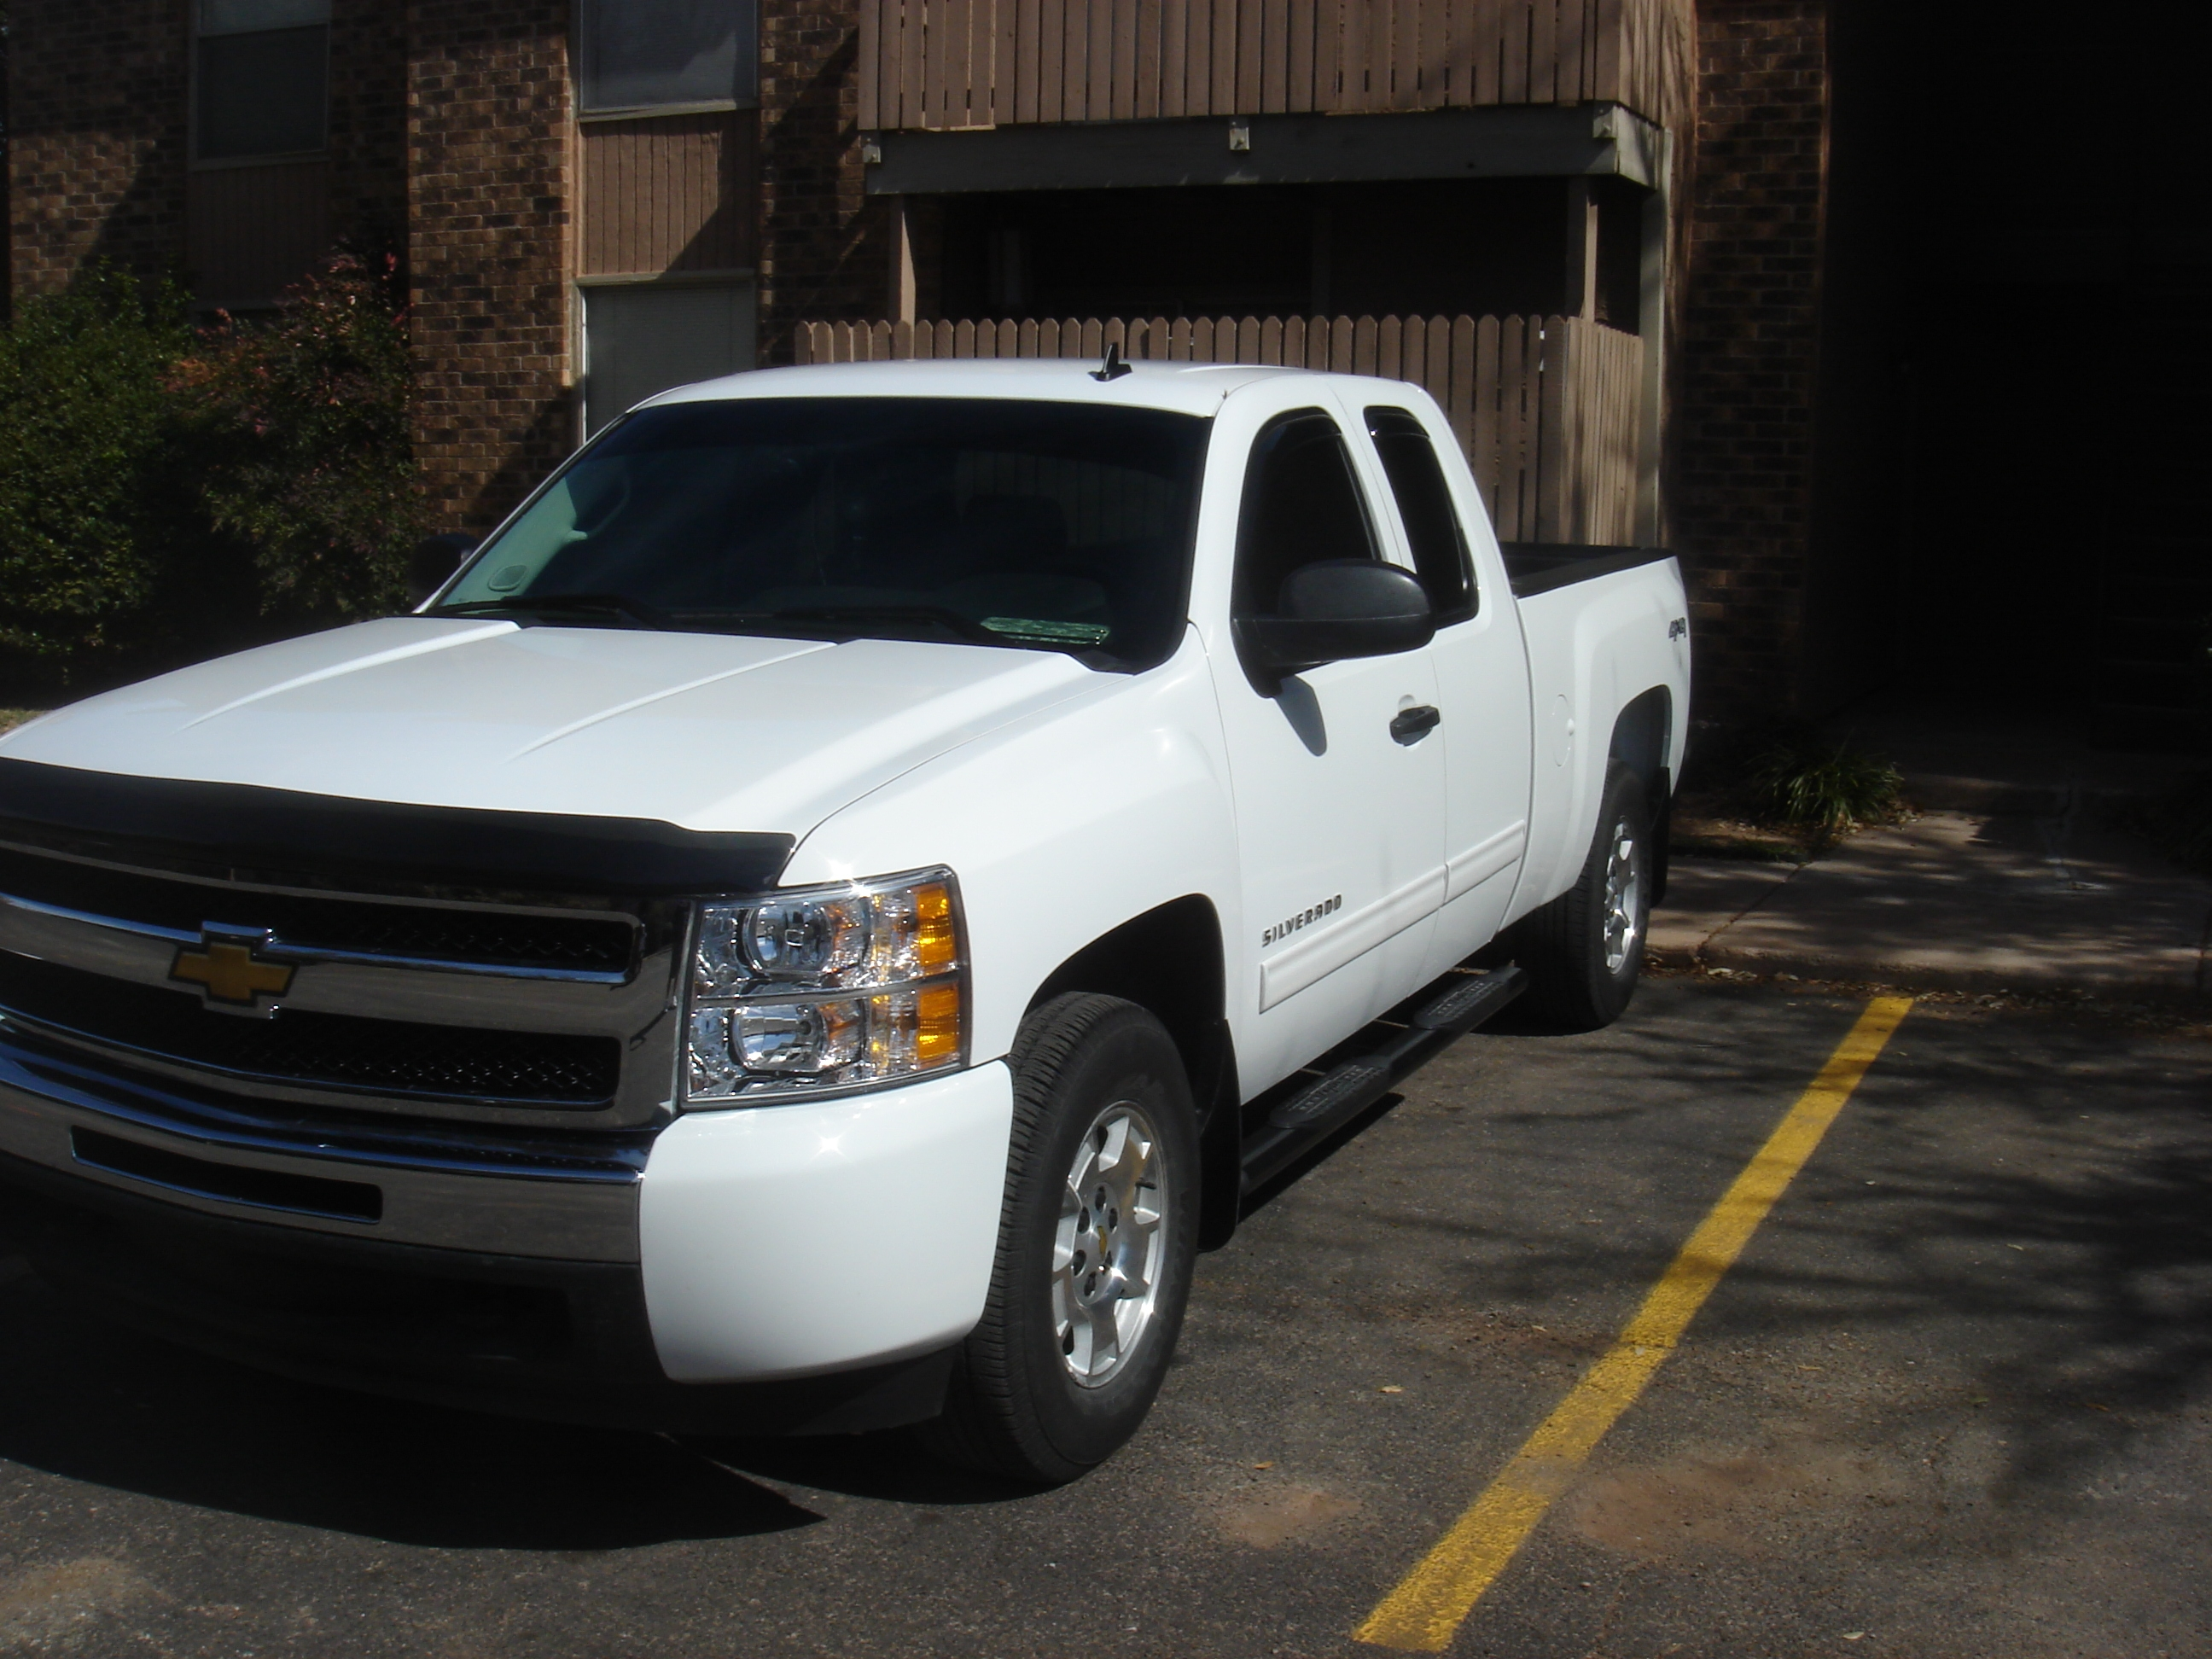 bigwhitey4x4 39 s 2010 chevrolet silverado 1500 extended cab. Black Bedroom Furniture Sets. Home Design Ideas